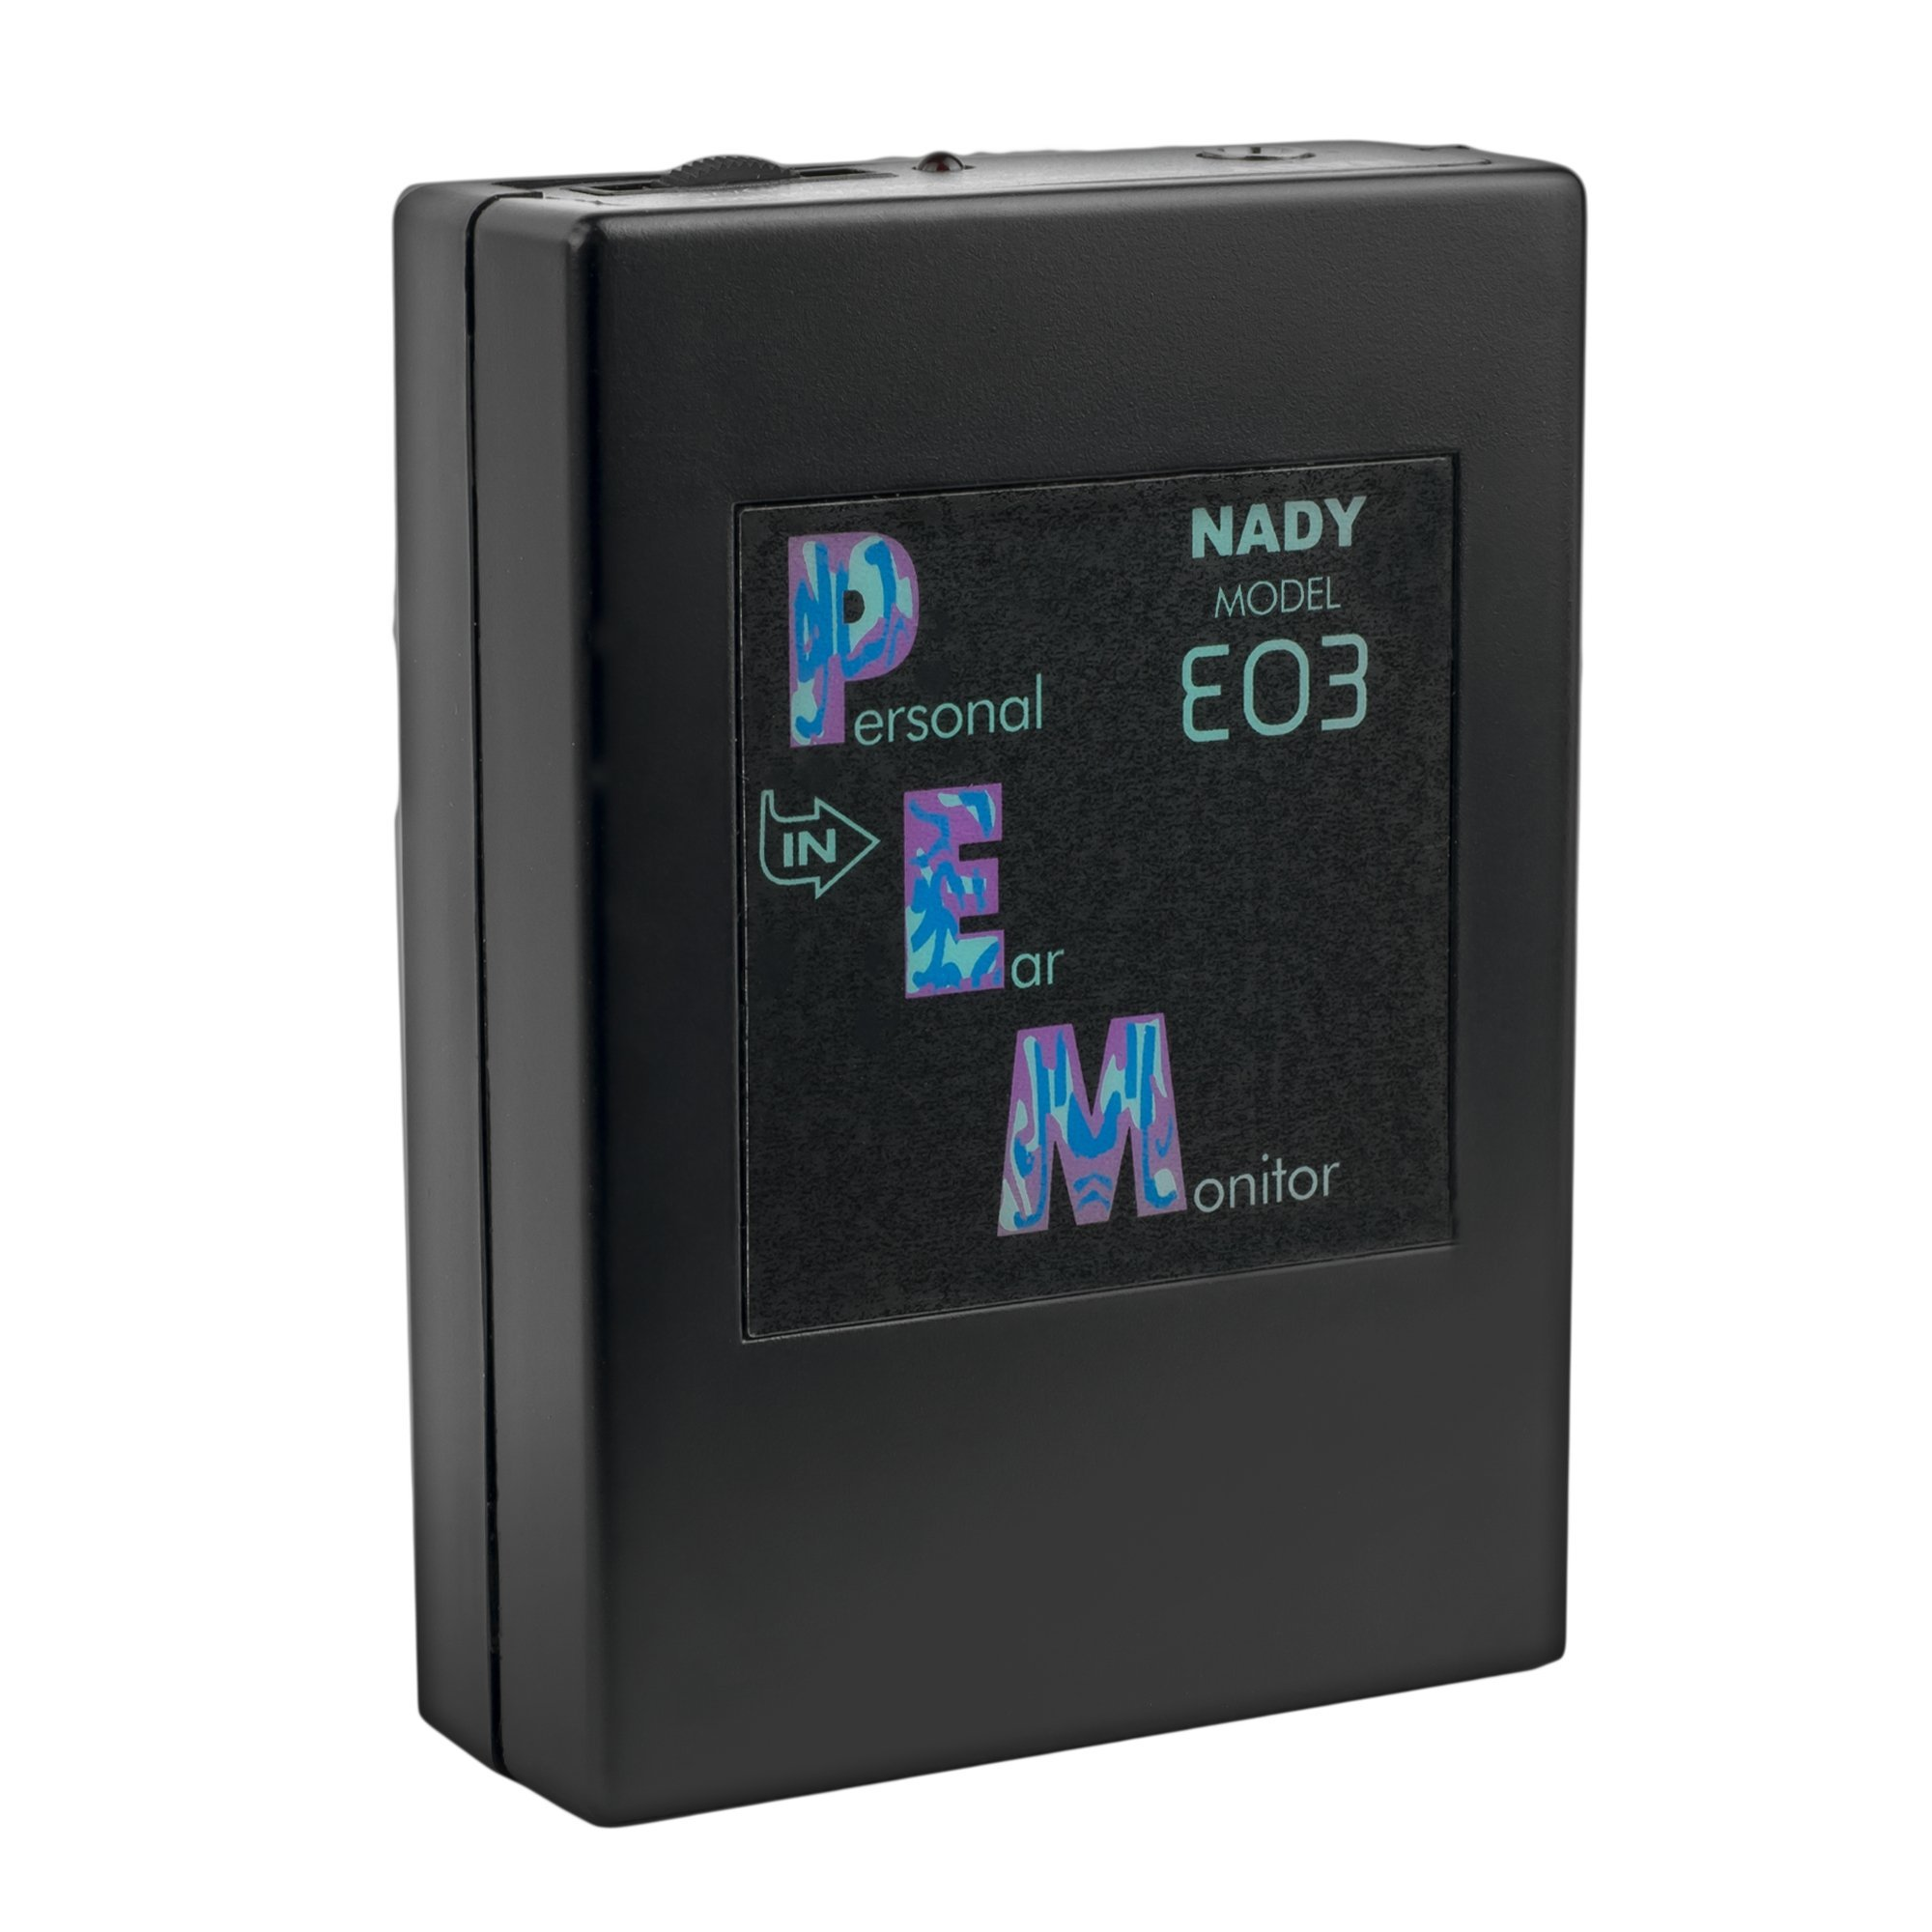 Nady EO3 Wireless Personal In-Ear Monitor System with Earbud Headphones by Nady (Image #5)